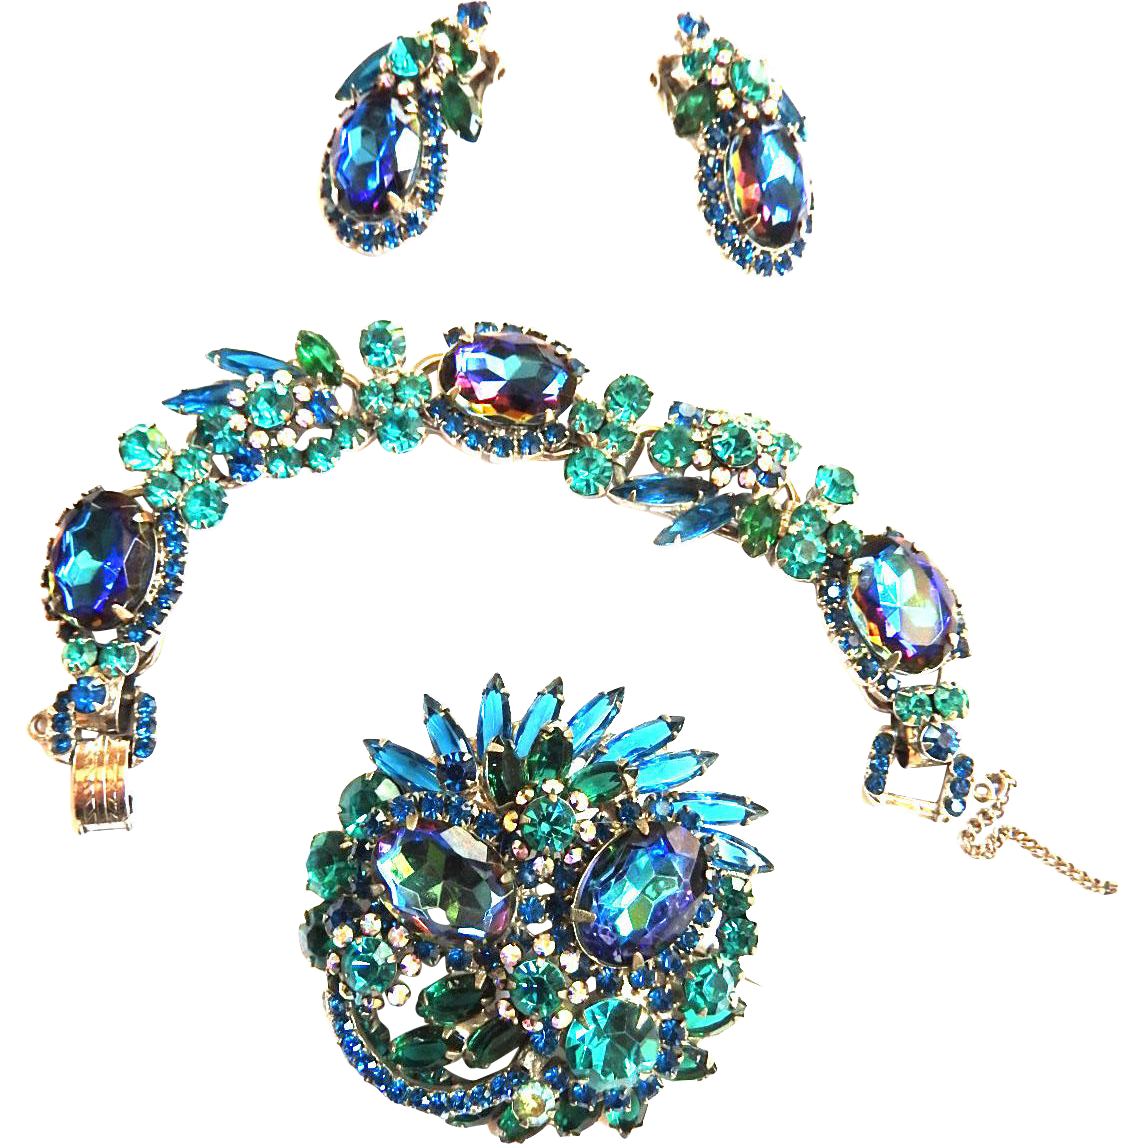 Sought After Juliana Bermuda Blue Bracelet Brooch and Earrings